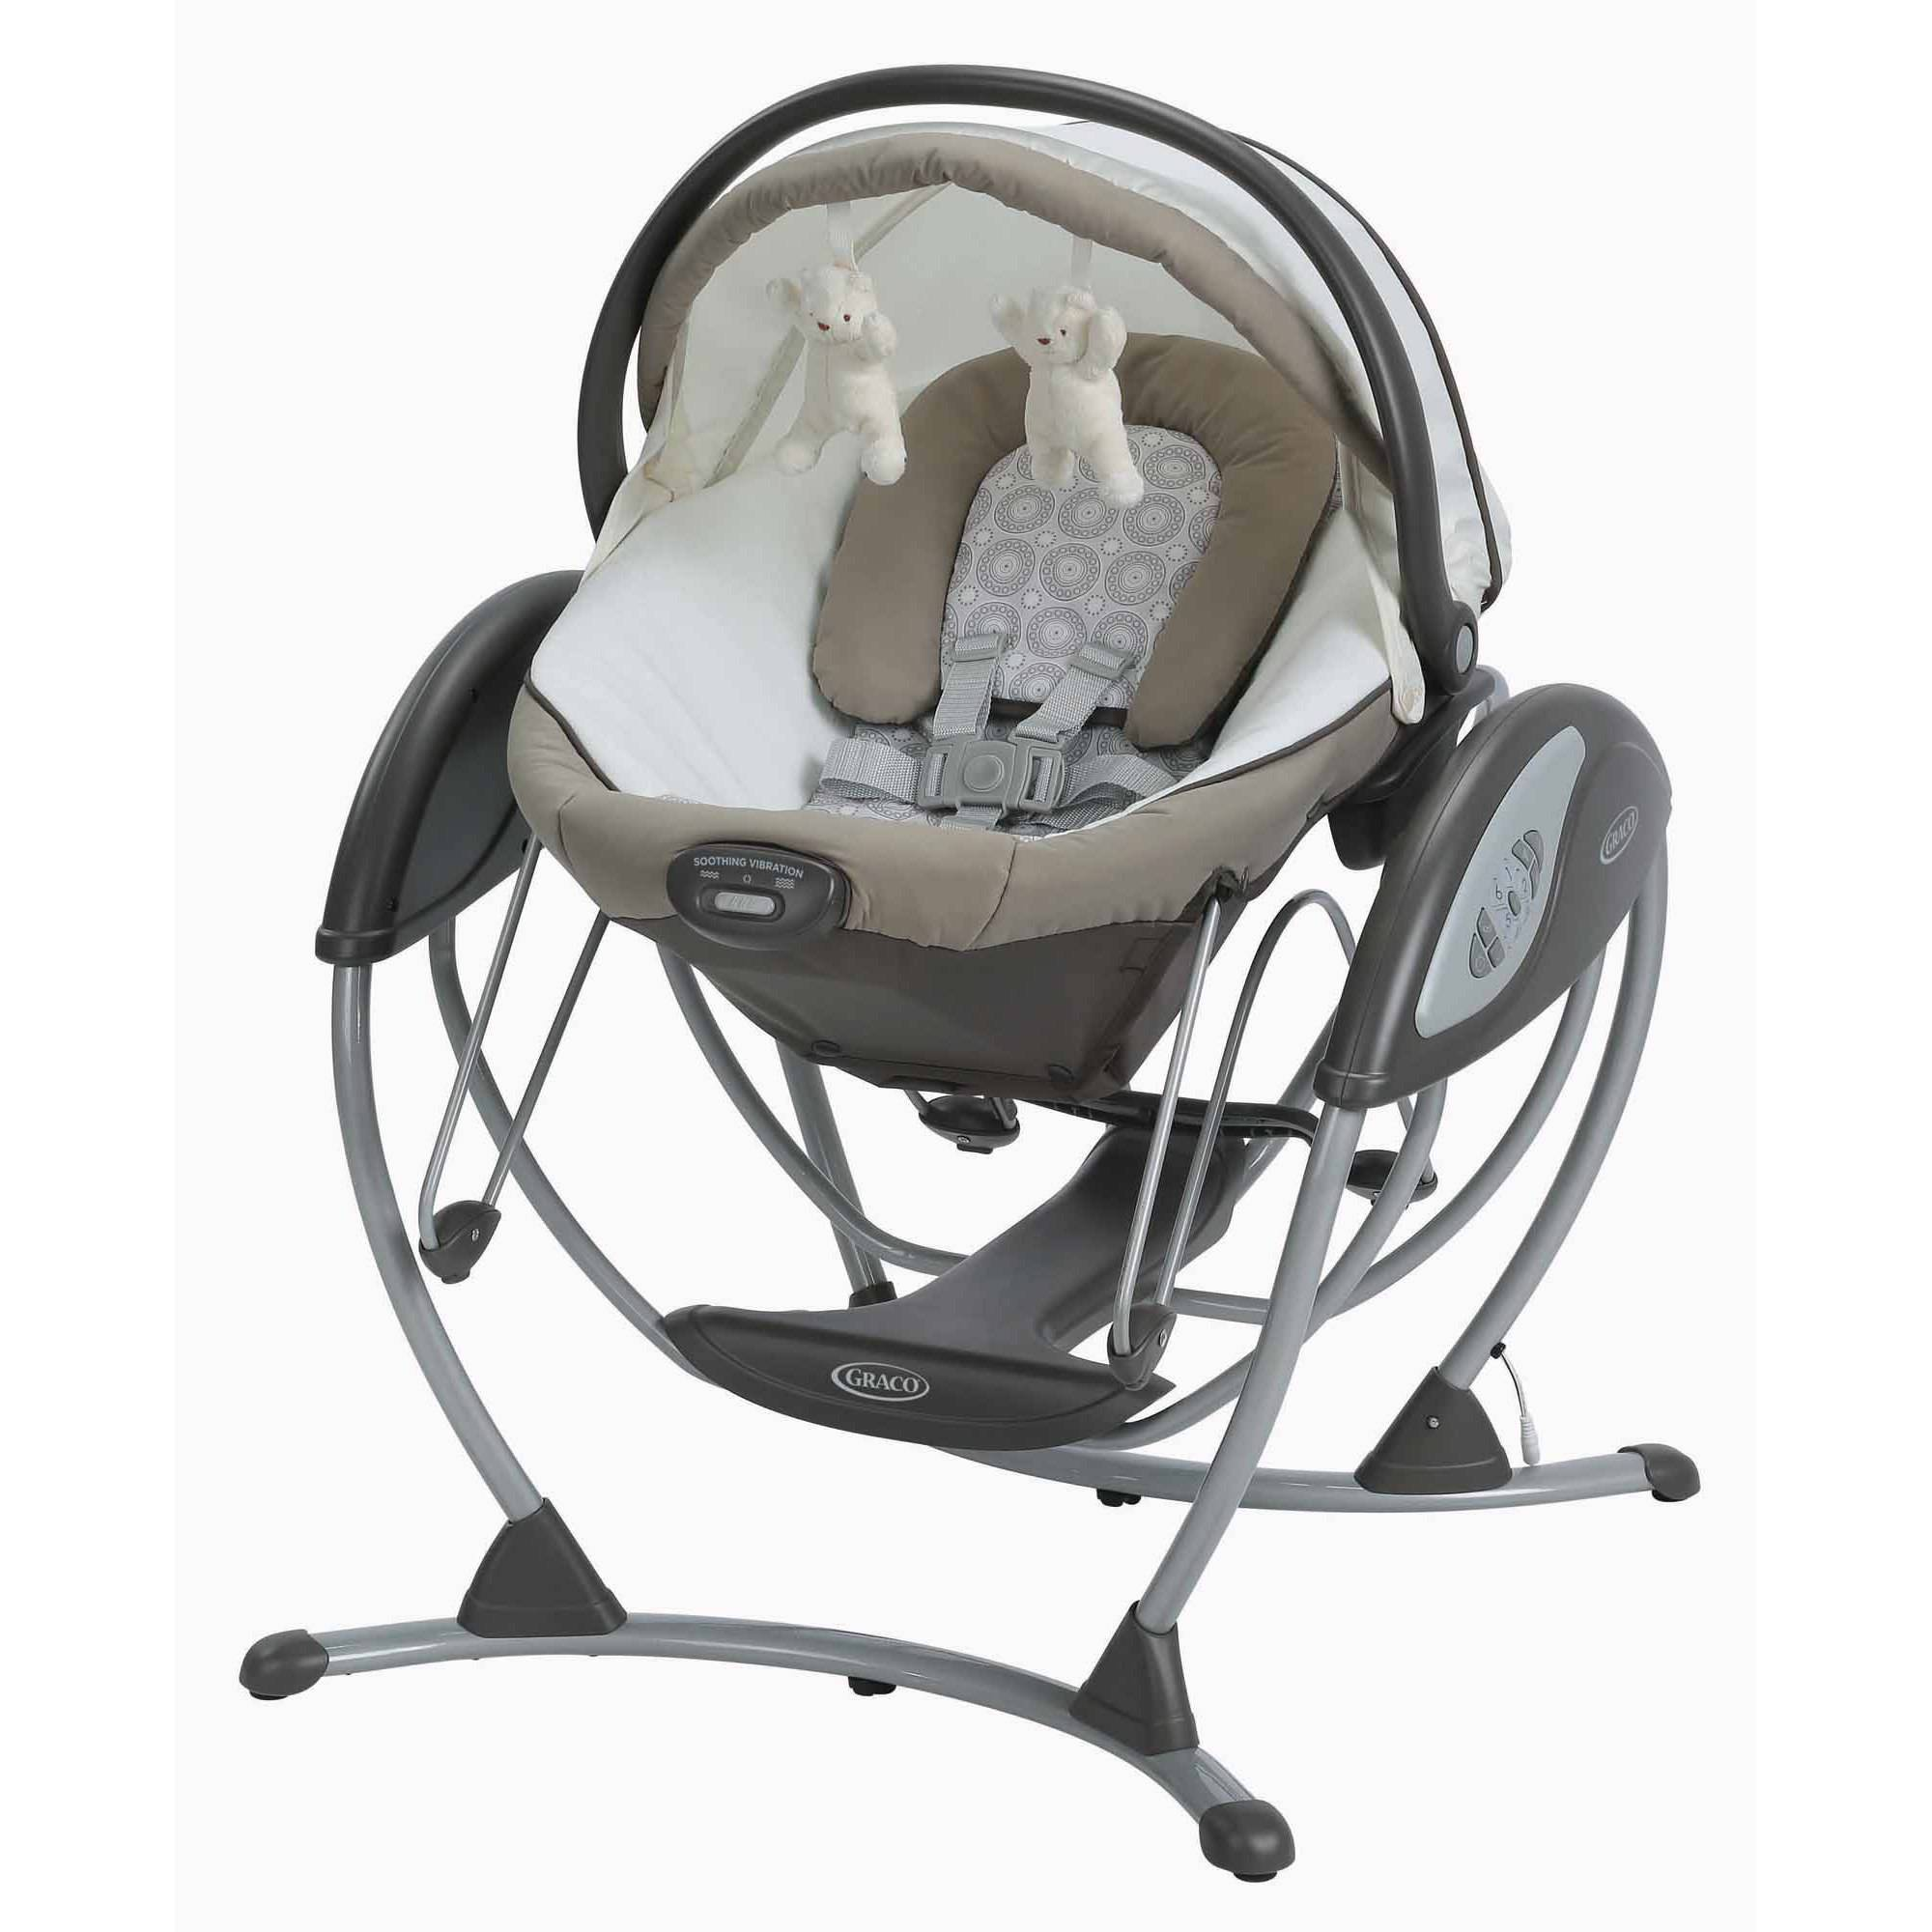 ab9fed84abb Graco Soothing System Glider Baby Swing